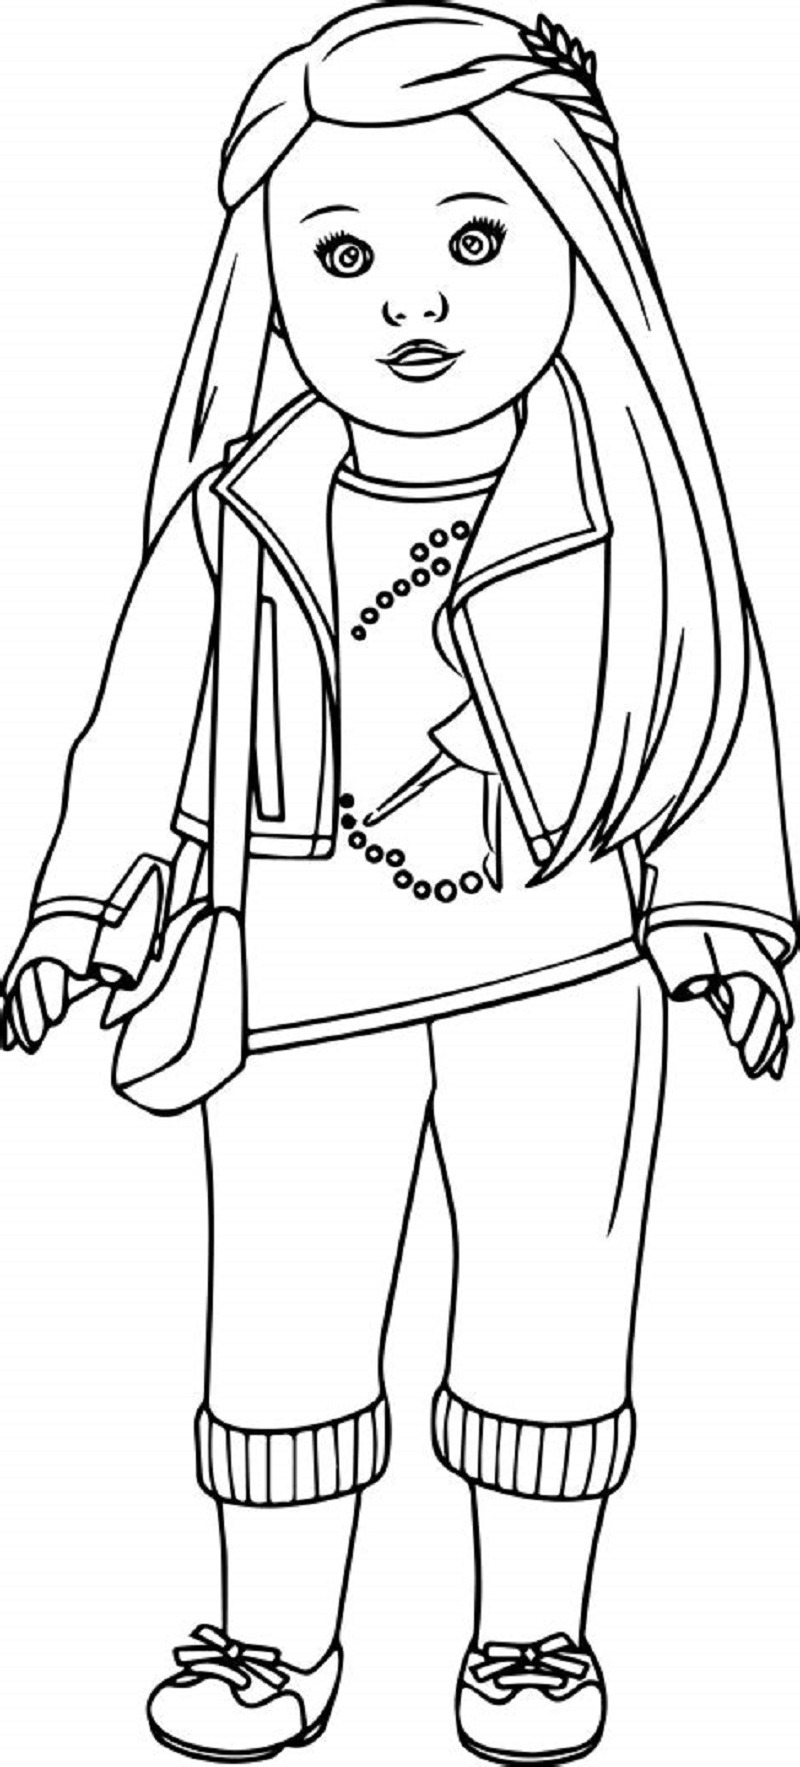 american girl coloring page cute ag american girl doll coloring pages coloring sheets girl page american coloring